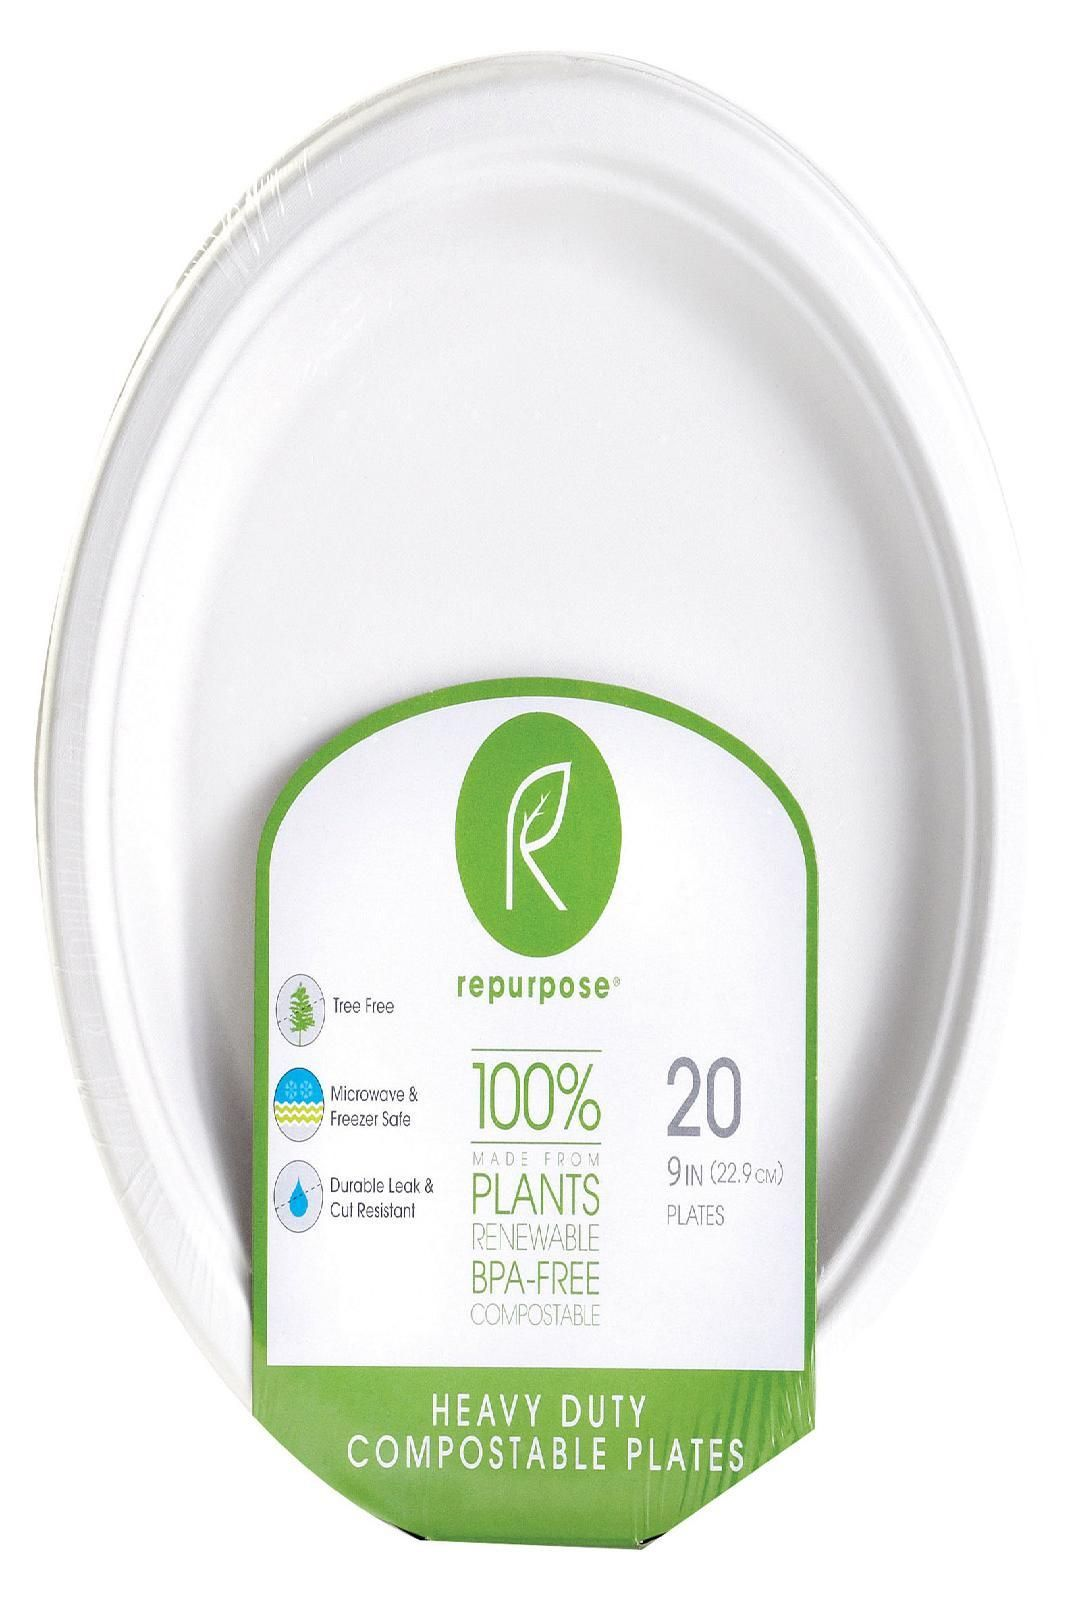 Biodegradable 500 Compostable Plates 7 Inch: Heavy Duty Microwave and Freezer Safe Ecofriendly Disposable Dessert Plates Tree and Plastic Free Alternative to Small Paper Plates